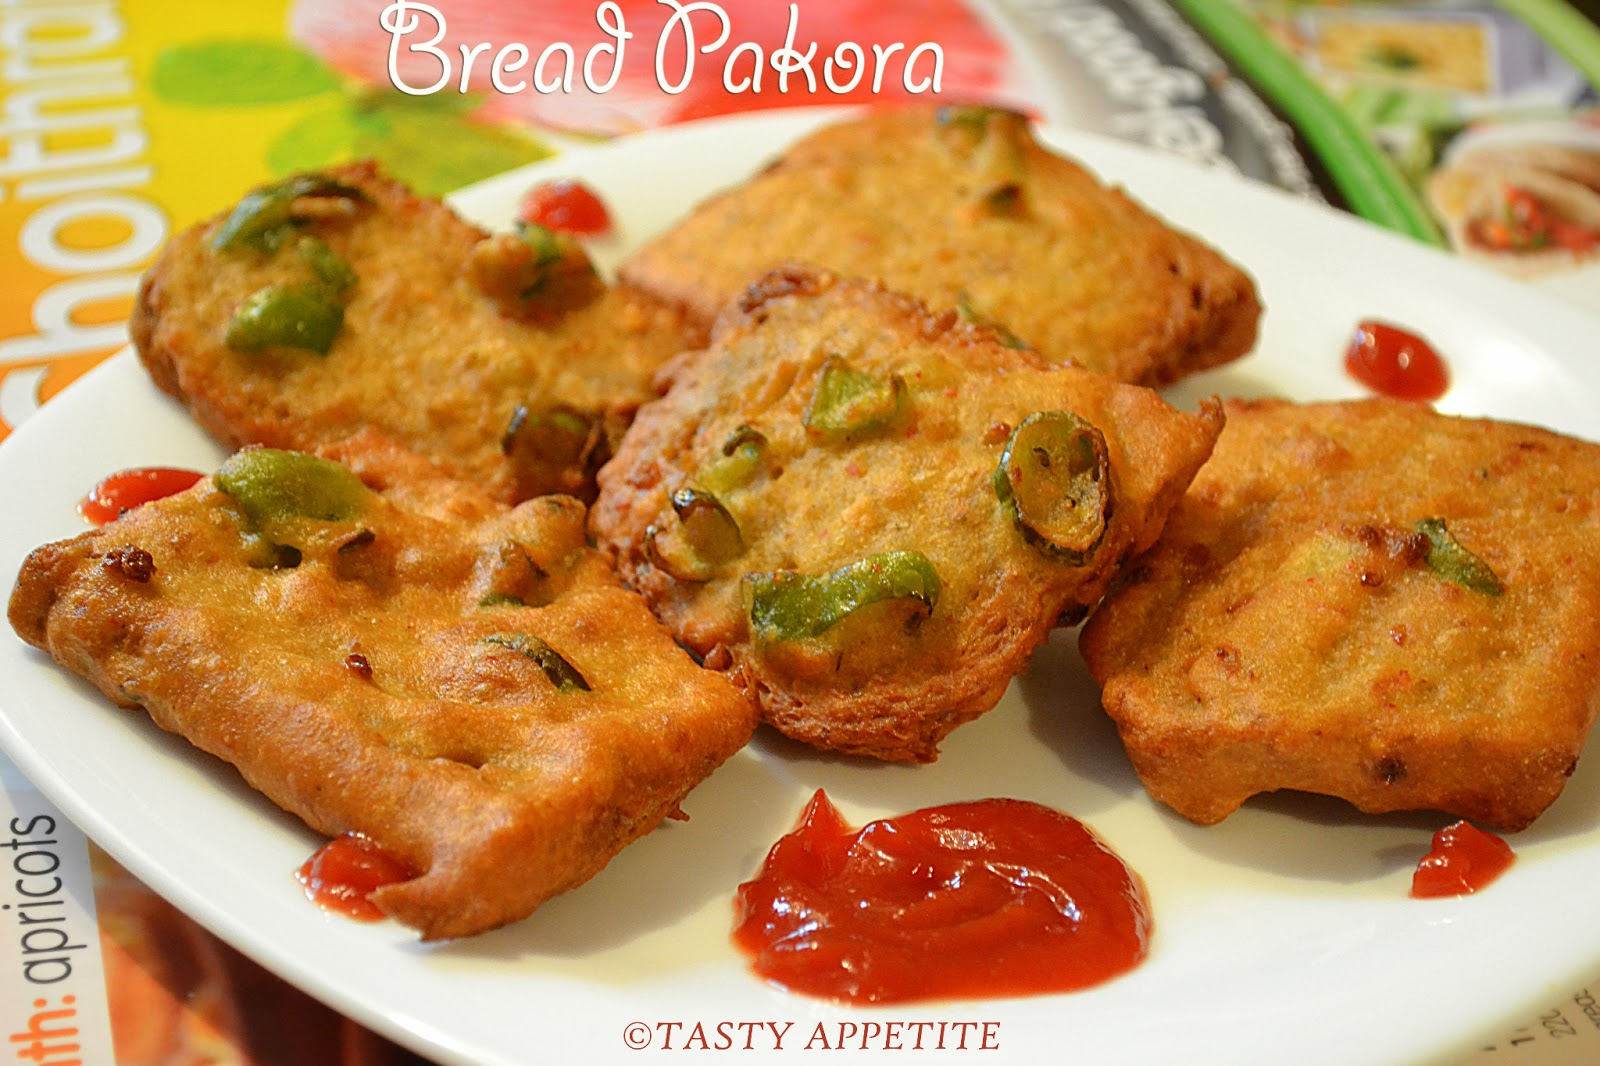 How to make bread pakora fritter recipes indian snacks recipes forumfinder Image collections